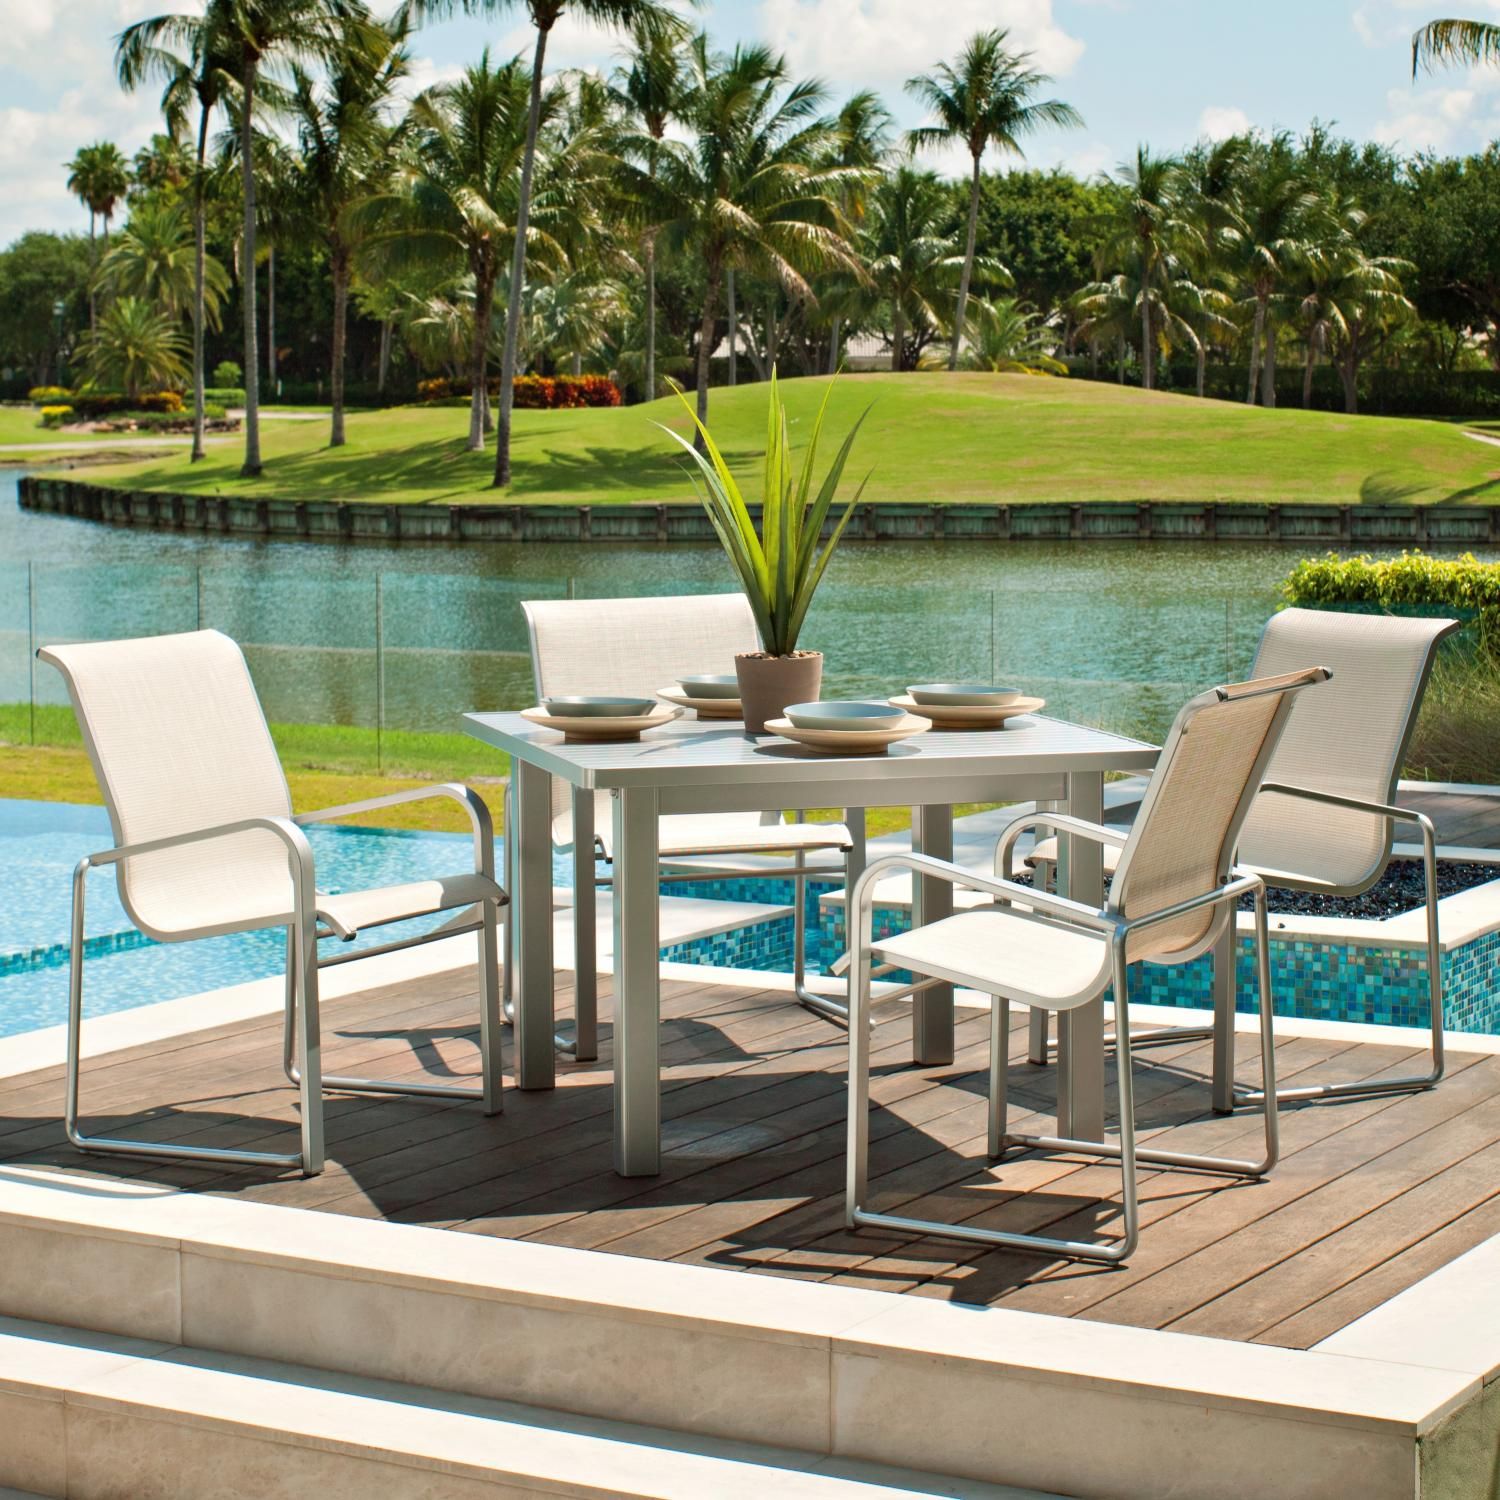 Oxford Garden Travira 6 Person Sling Patio Dining Set With